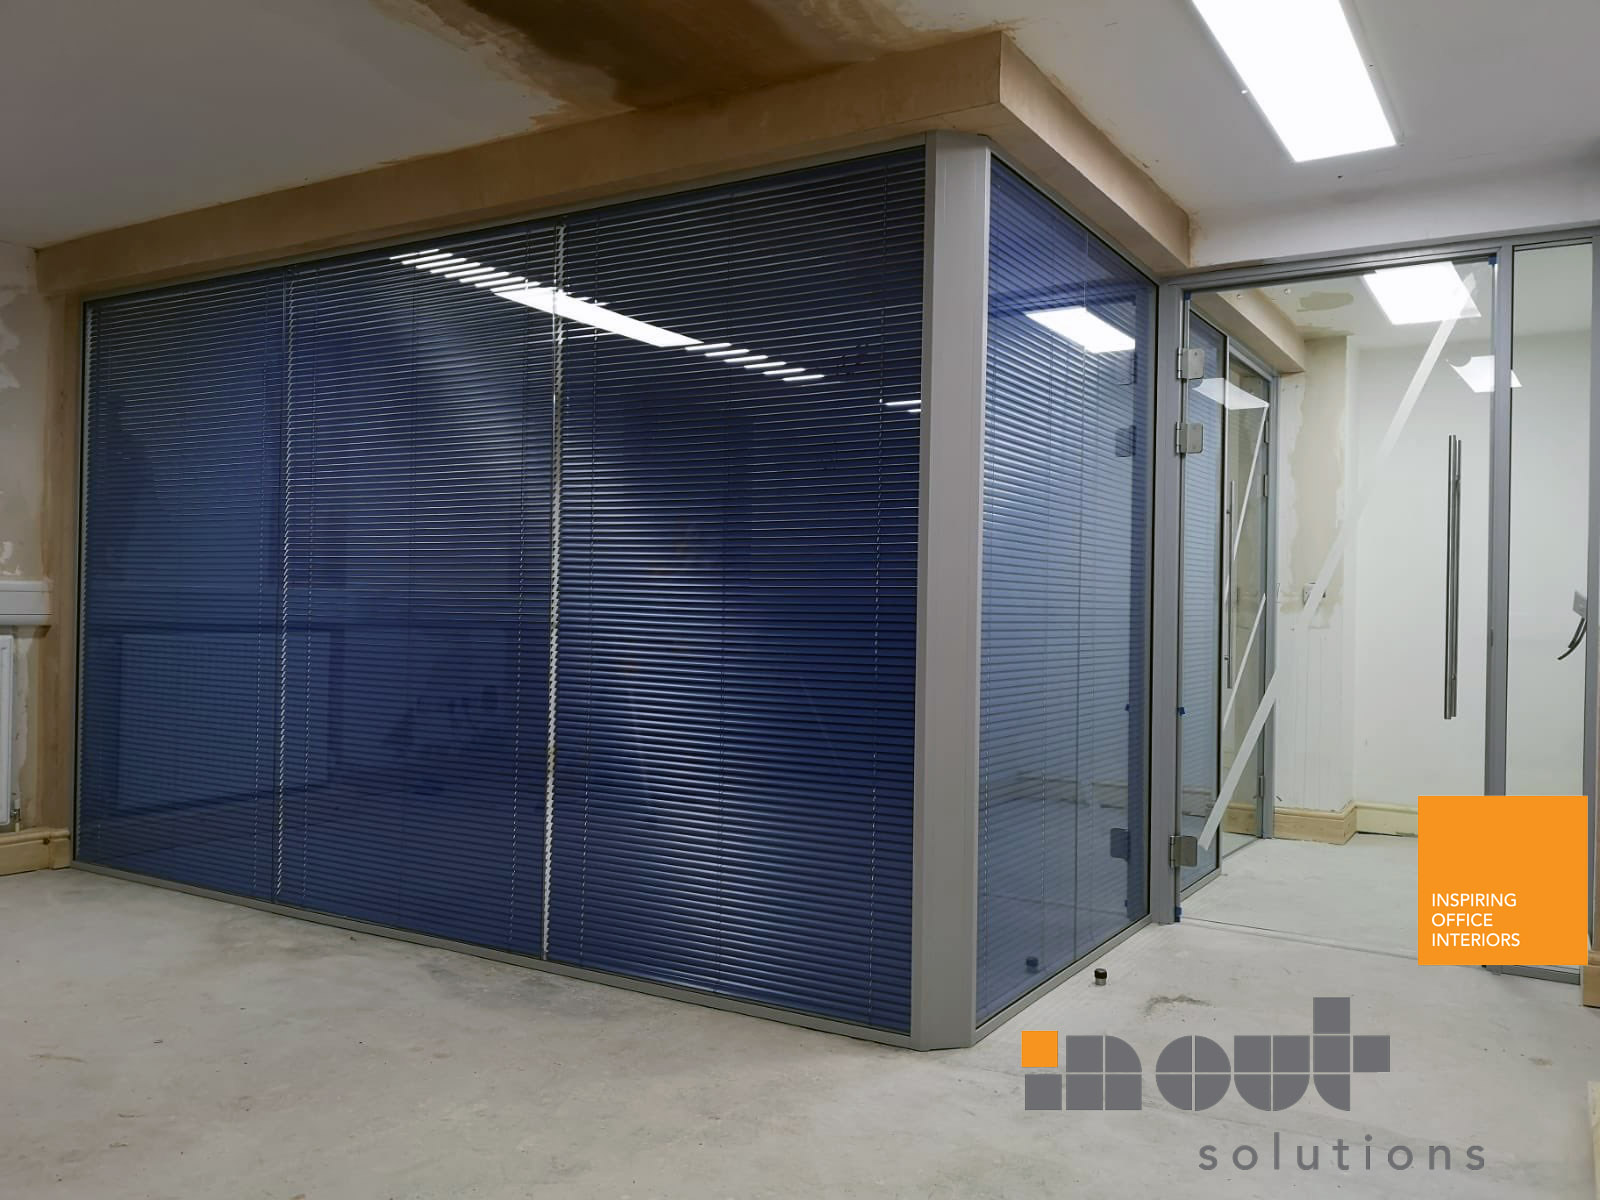 glass partitions Leeds Sheffield Yorkshire Rotherham doors glazed office partitioning glazing bespoke made to measure - 1